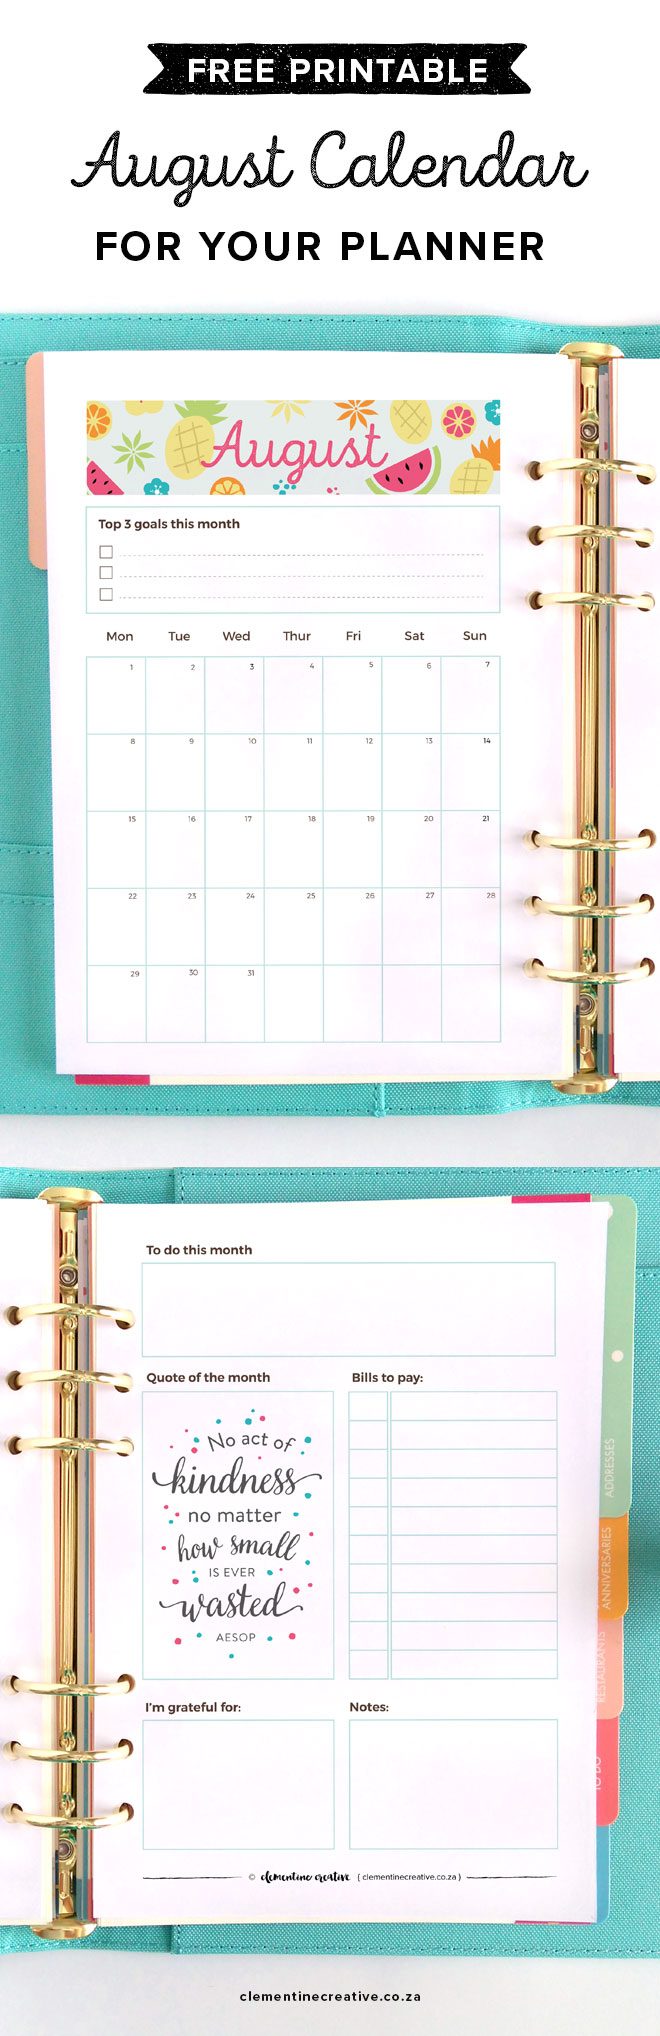 Get a new free printable monthly planner insert for your kikki.K or Filofax delivered to your inbox every month! Get August's calendar/planner here.